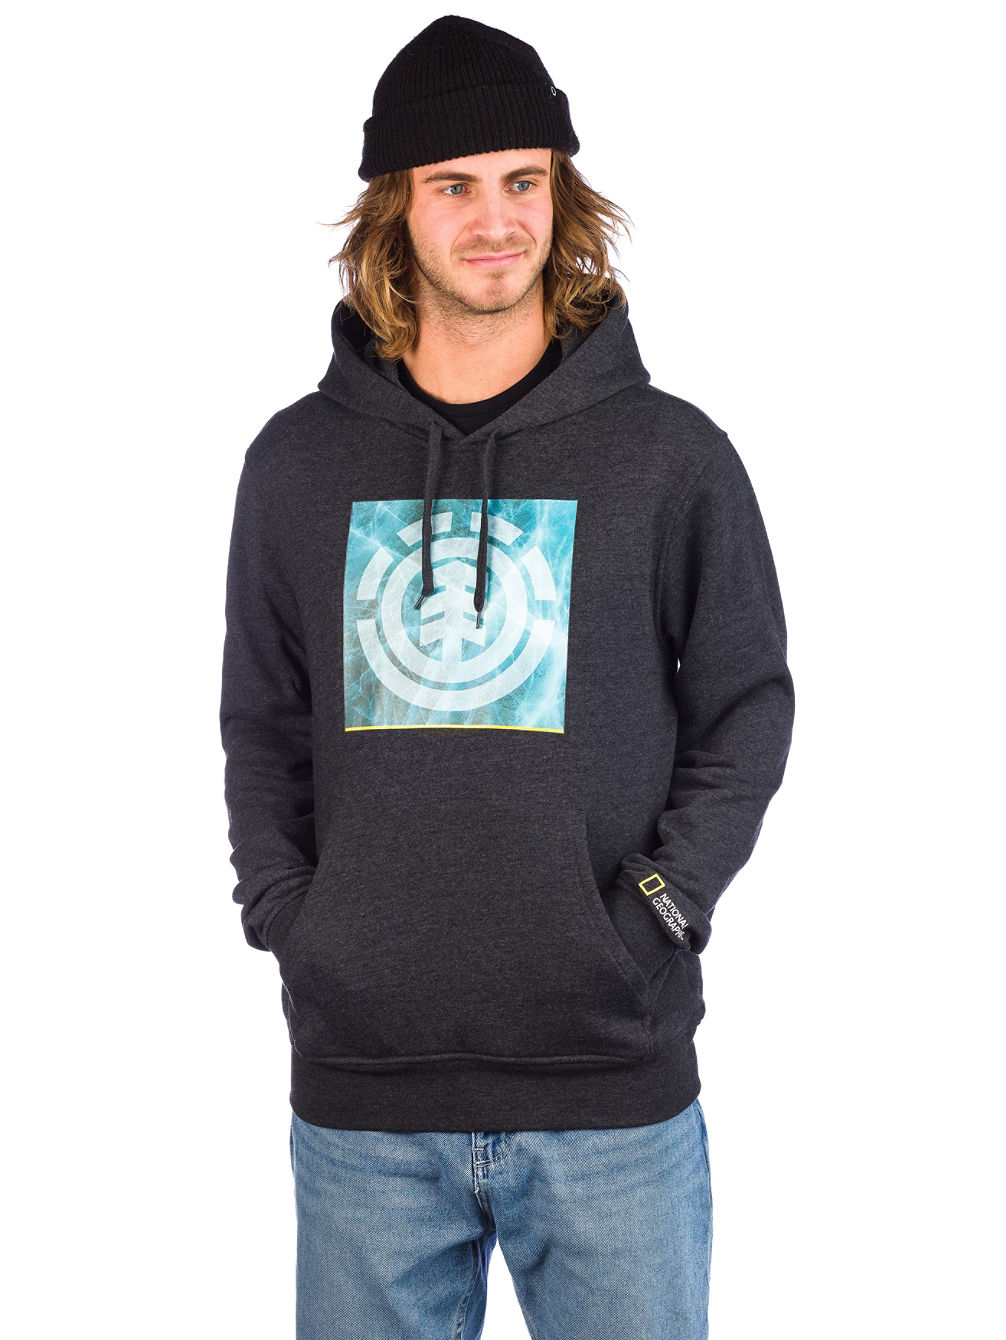 Solvent Icon Hoodie